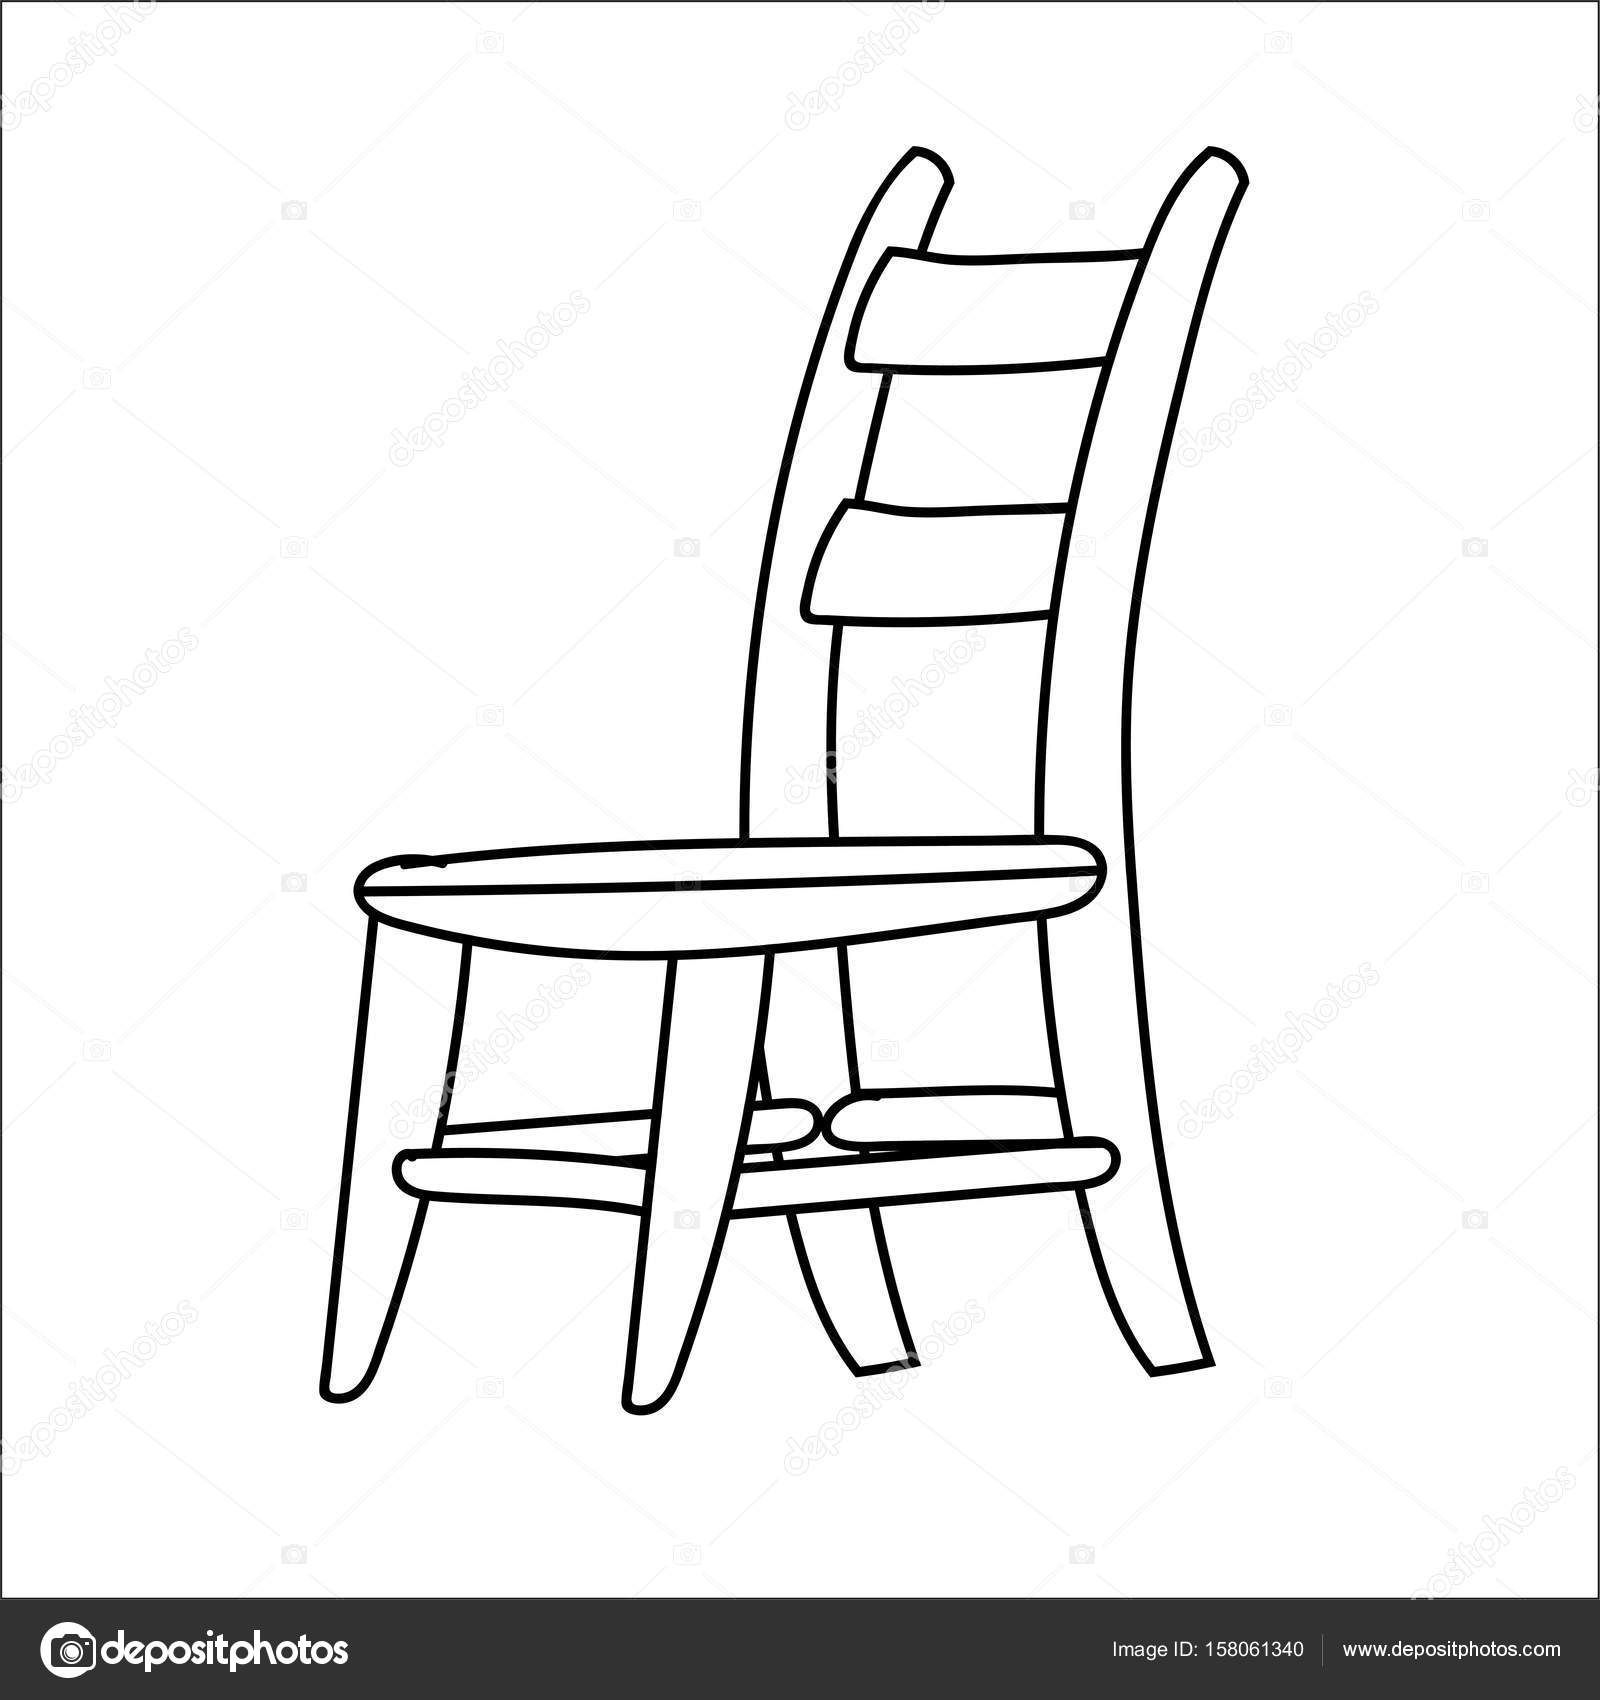 drawing of a chair transparent old chair png antique chair drawing free drawing of chair a